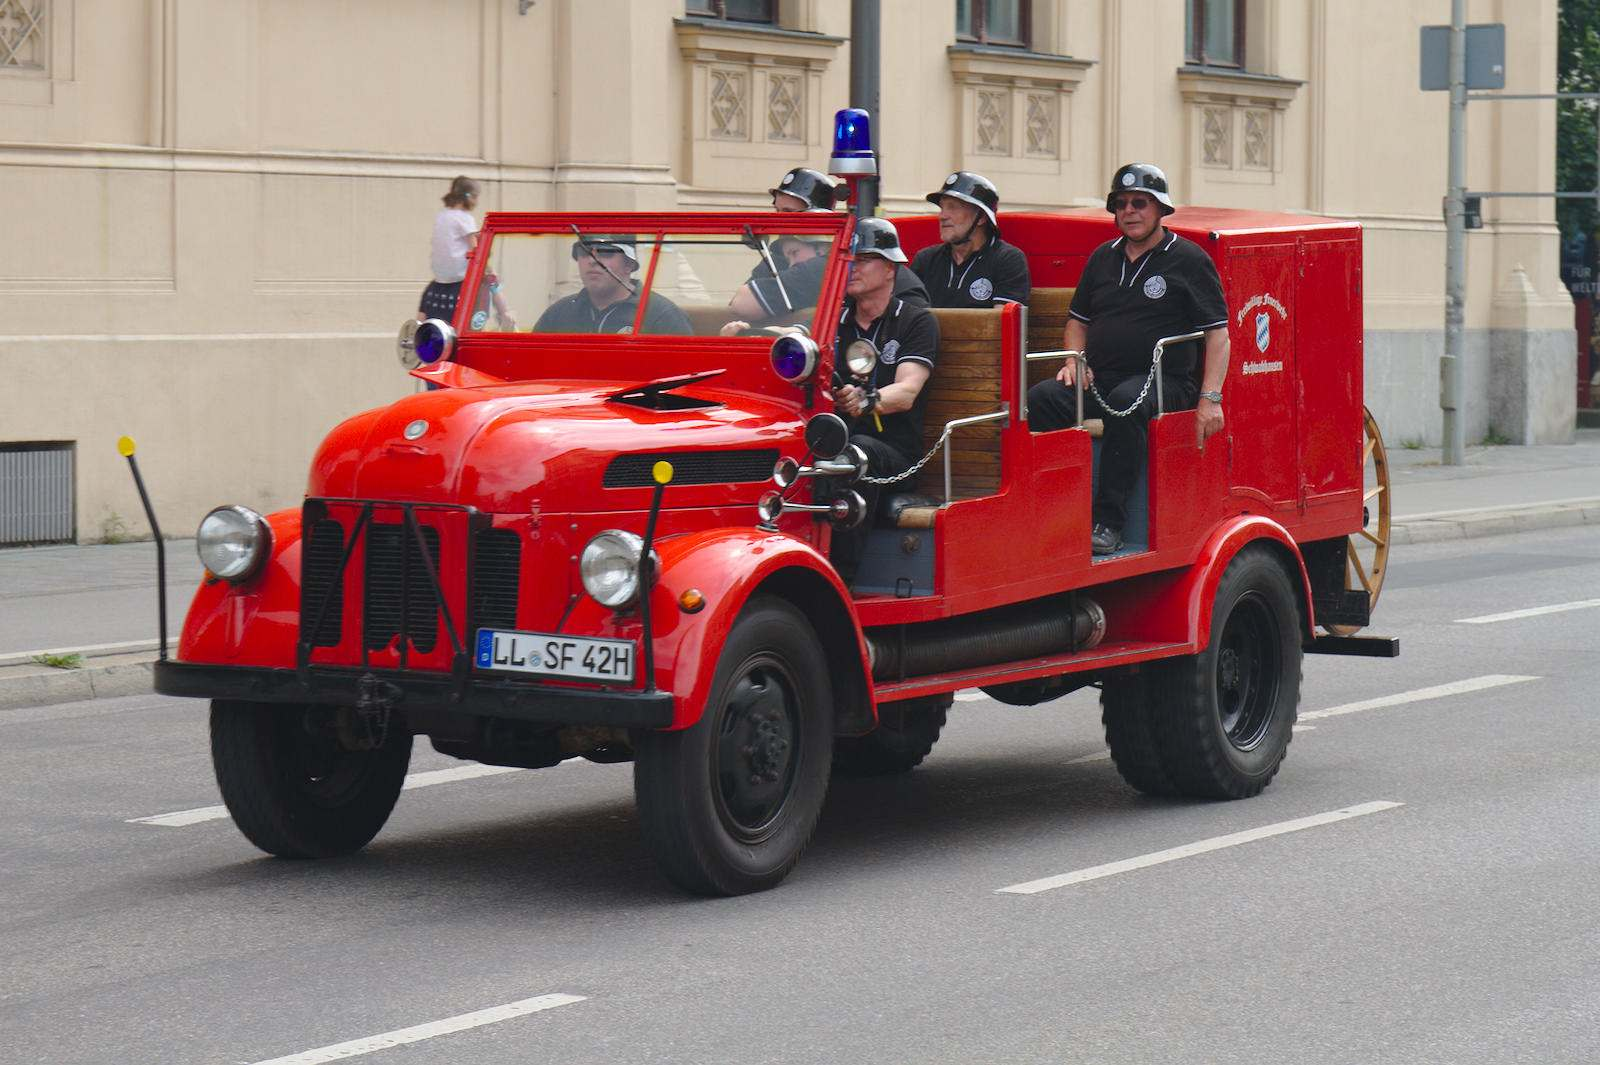 volunteer fire department5 150 Years Volunteer Fire Department in Munich